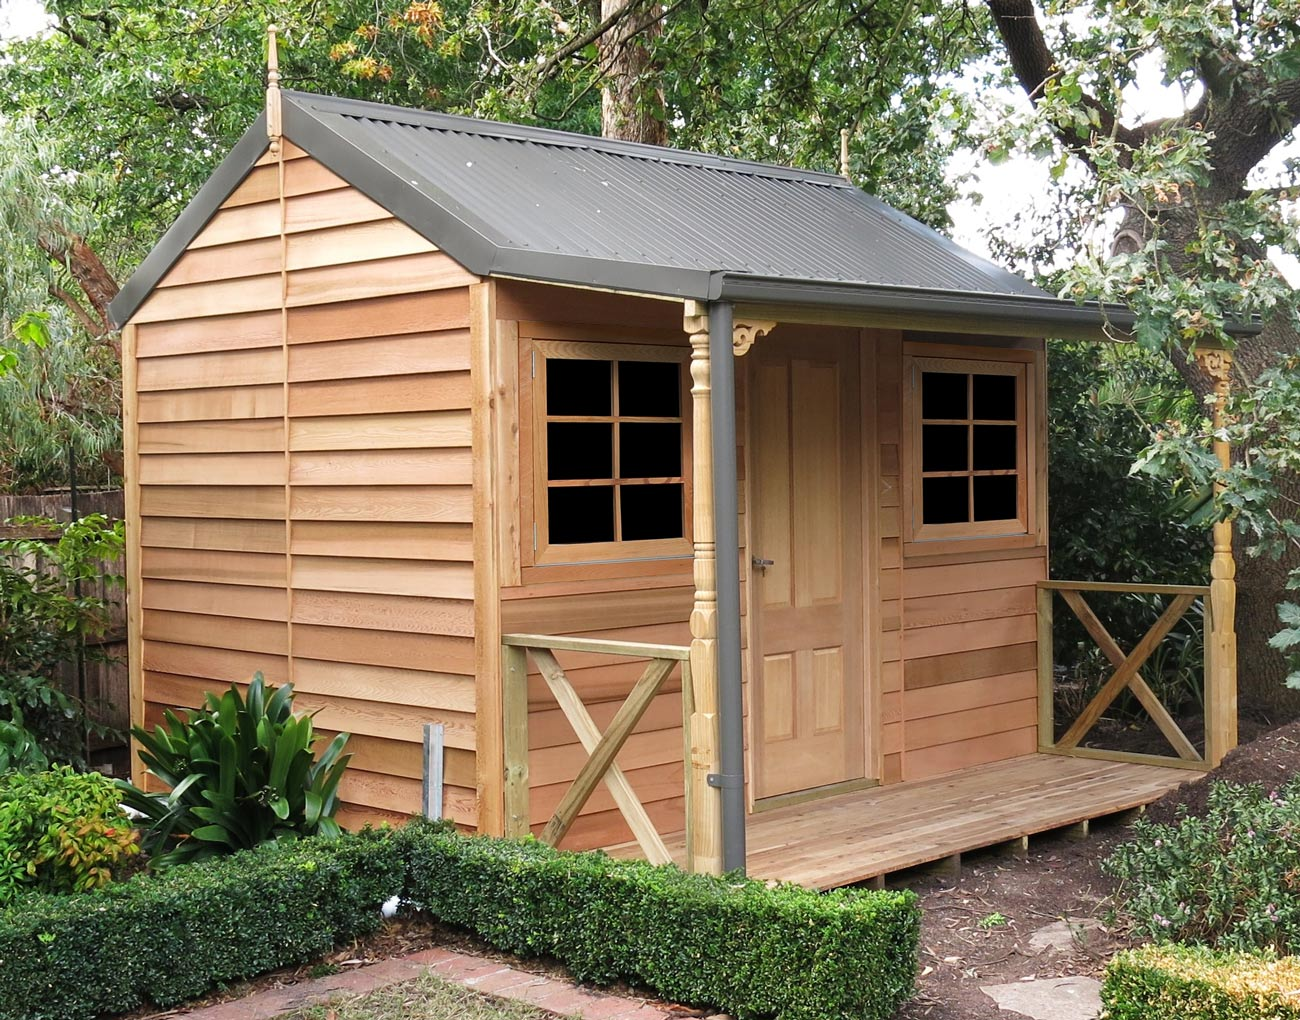 Cedar settlers hut 3 6mx2 6m 6 landera for Storage huts for garden